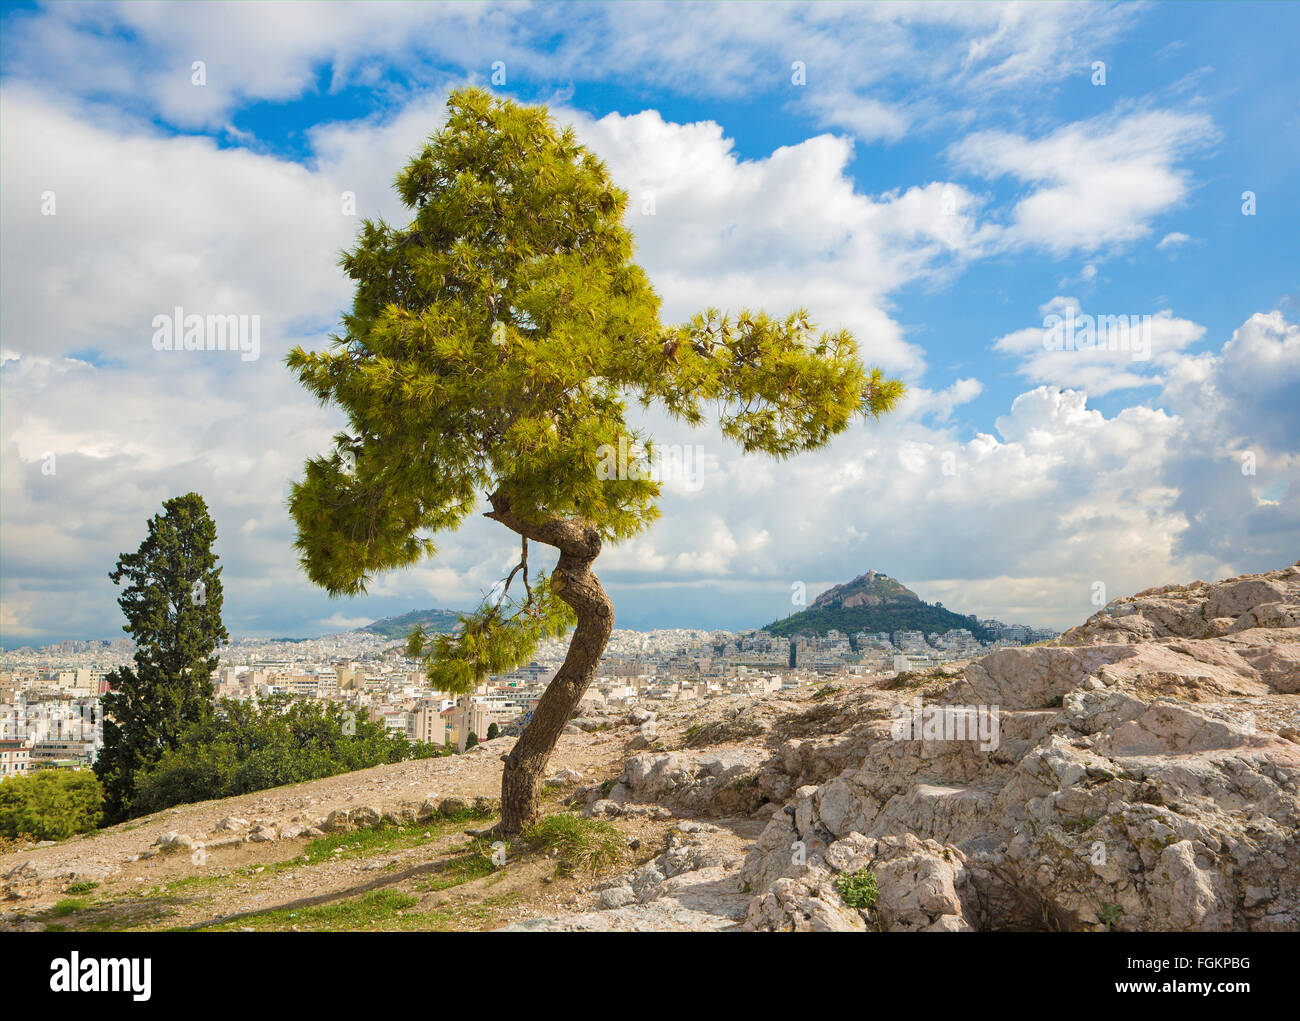 Athens - Outlook from Areopagus hill to Likavittos hill and the cloudscape - Stock Image